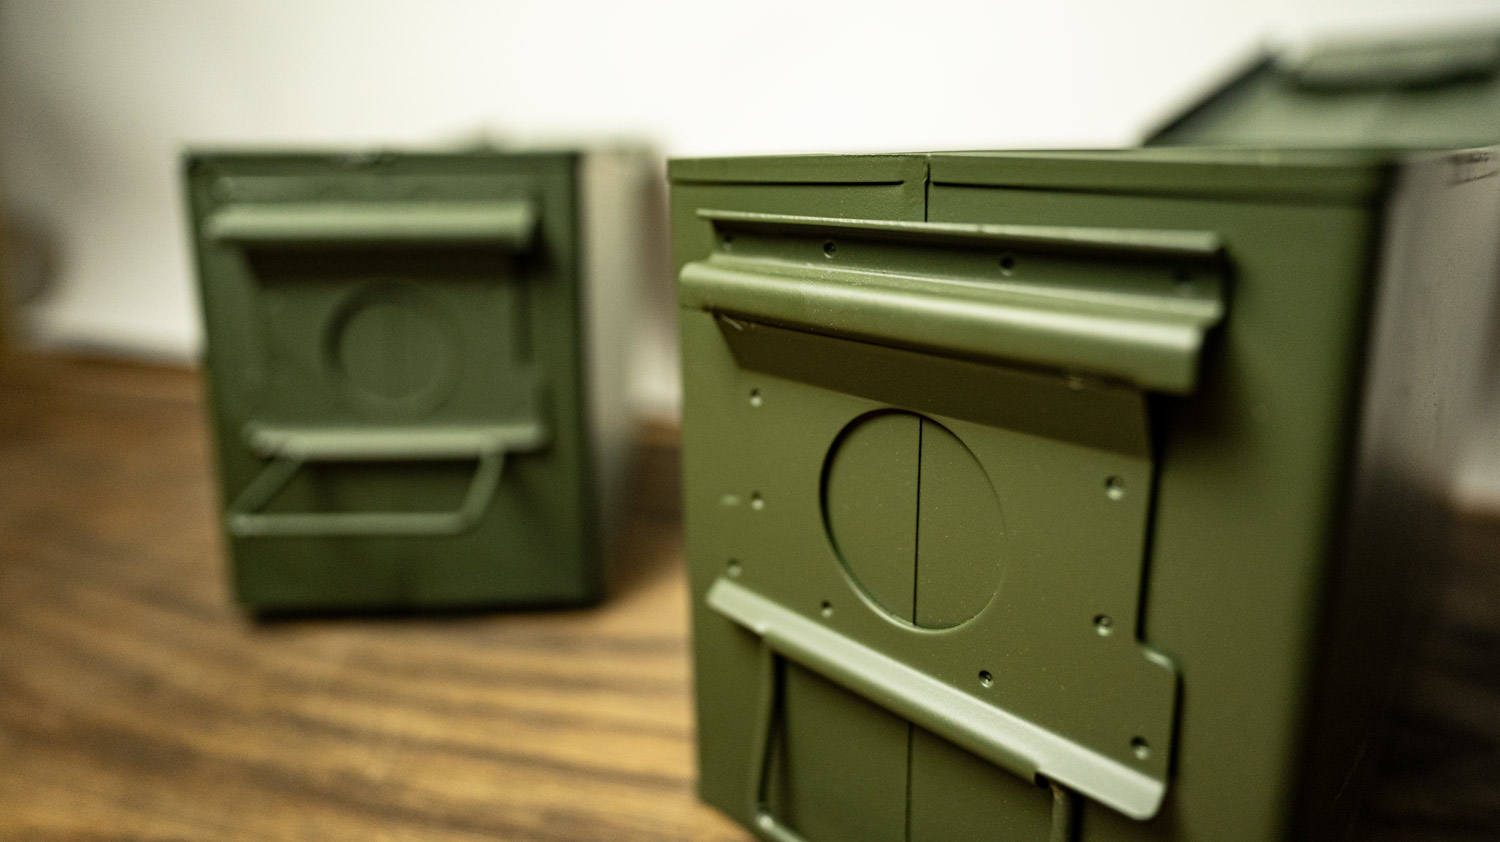 A close up of the M2A2 ammo can's support lip near the lid